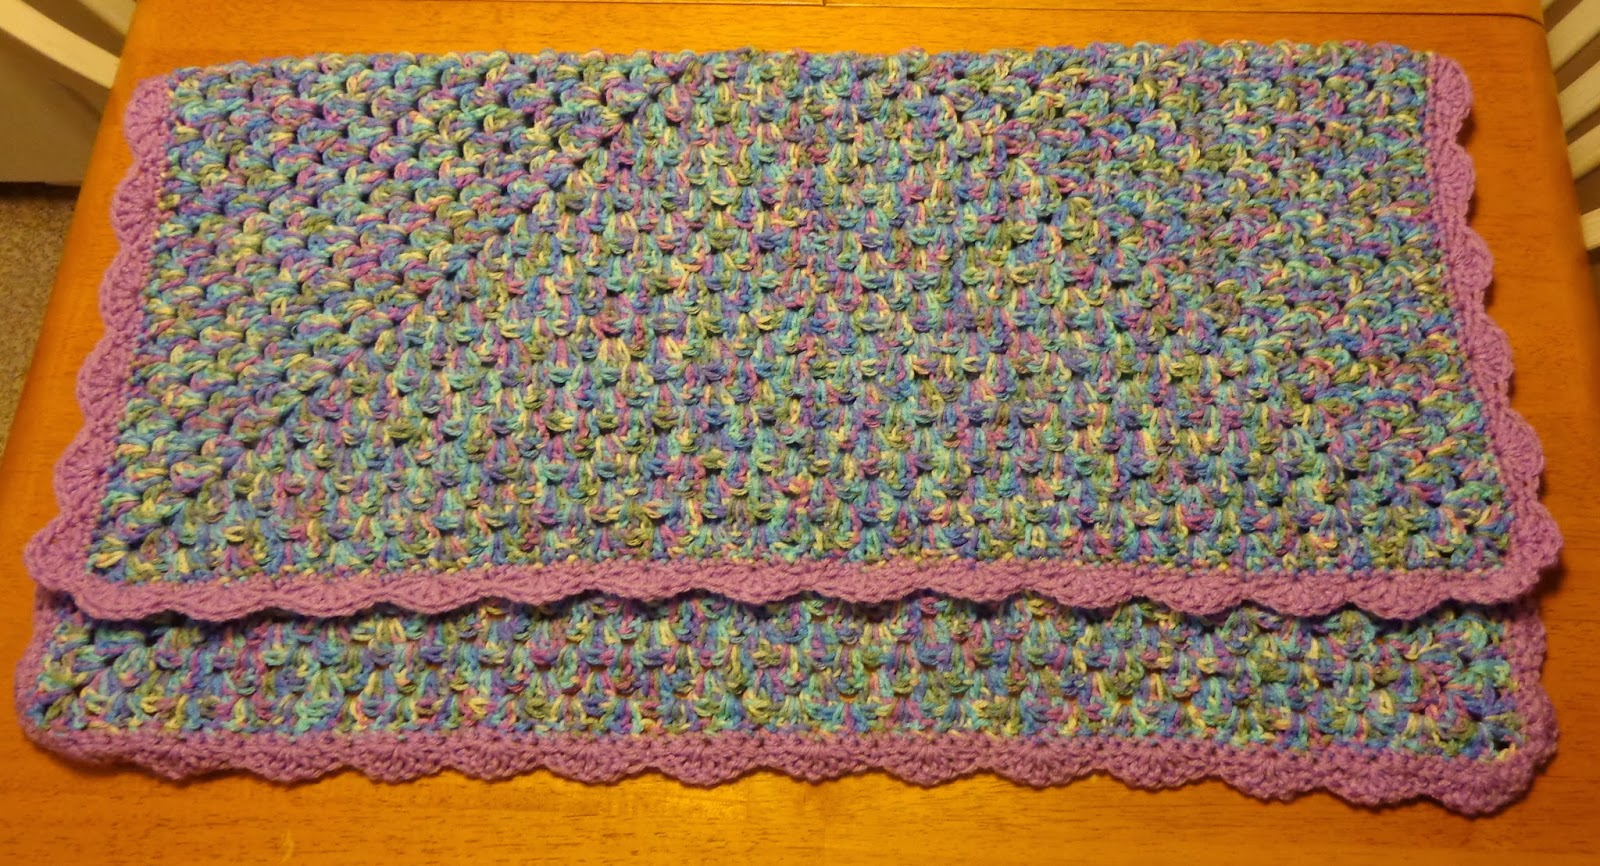 Hobby Hooker: Granny Square Baby Blanket with Scallop Edging